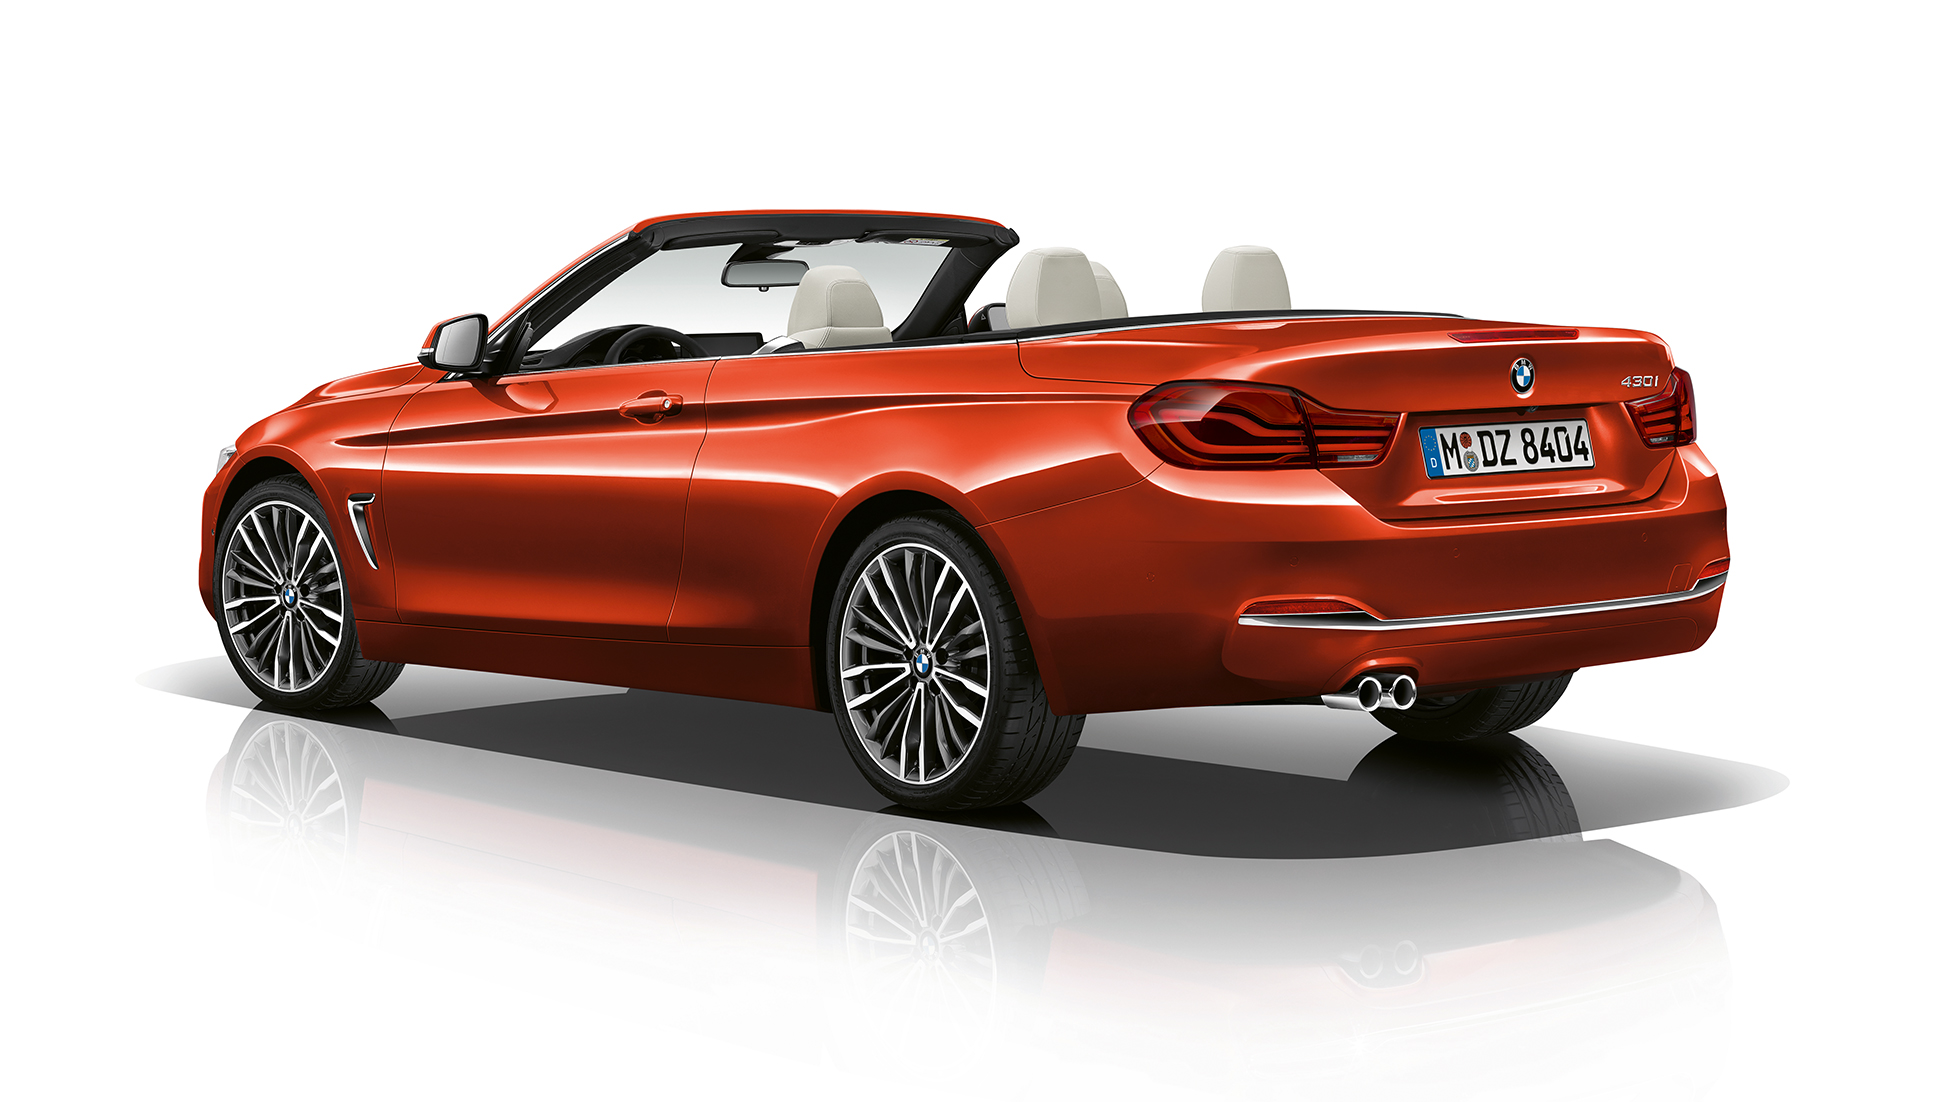 BMW 4 Serie Cabrio, Model Luxury Line driekwart achteraanzicht